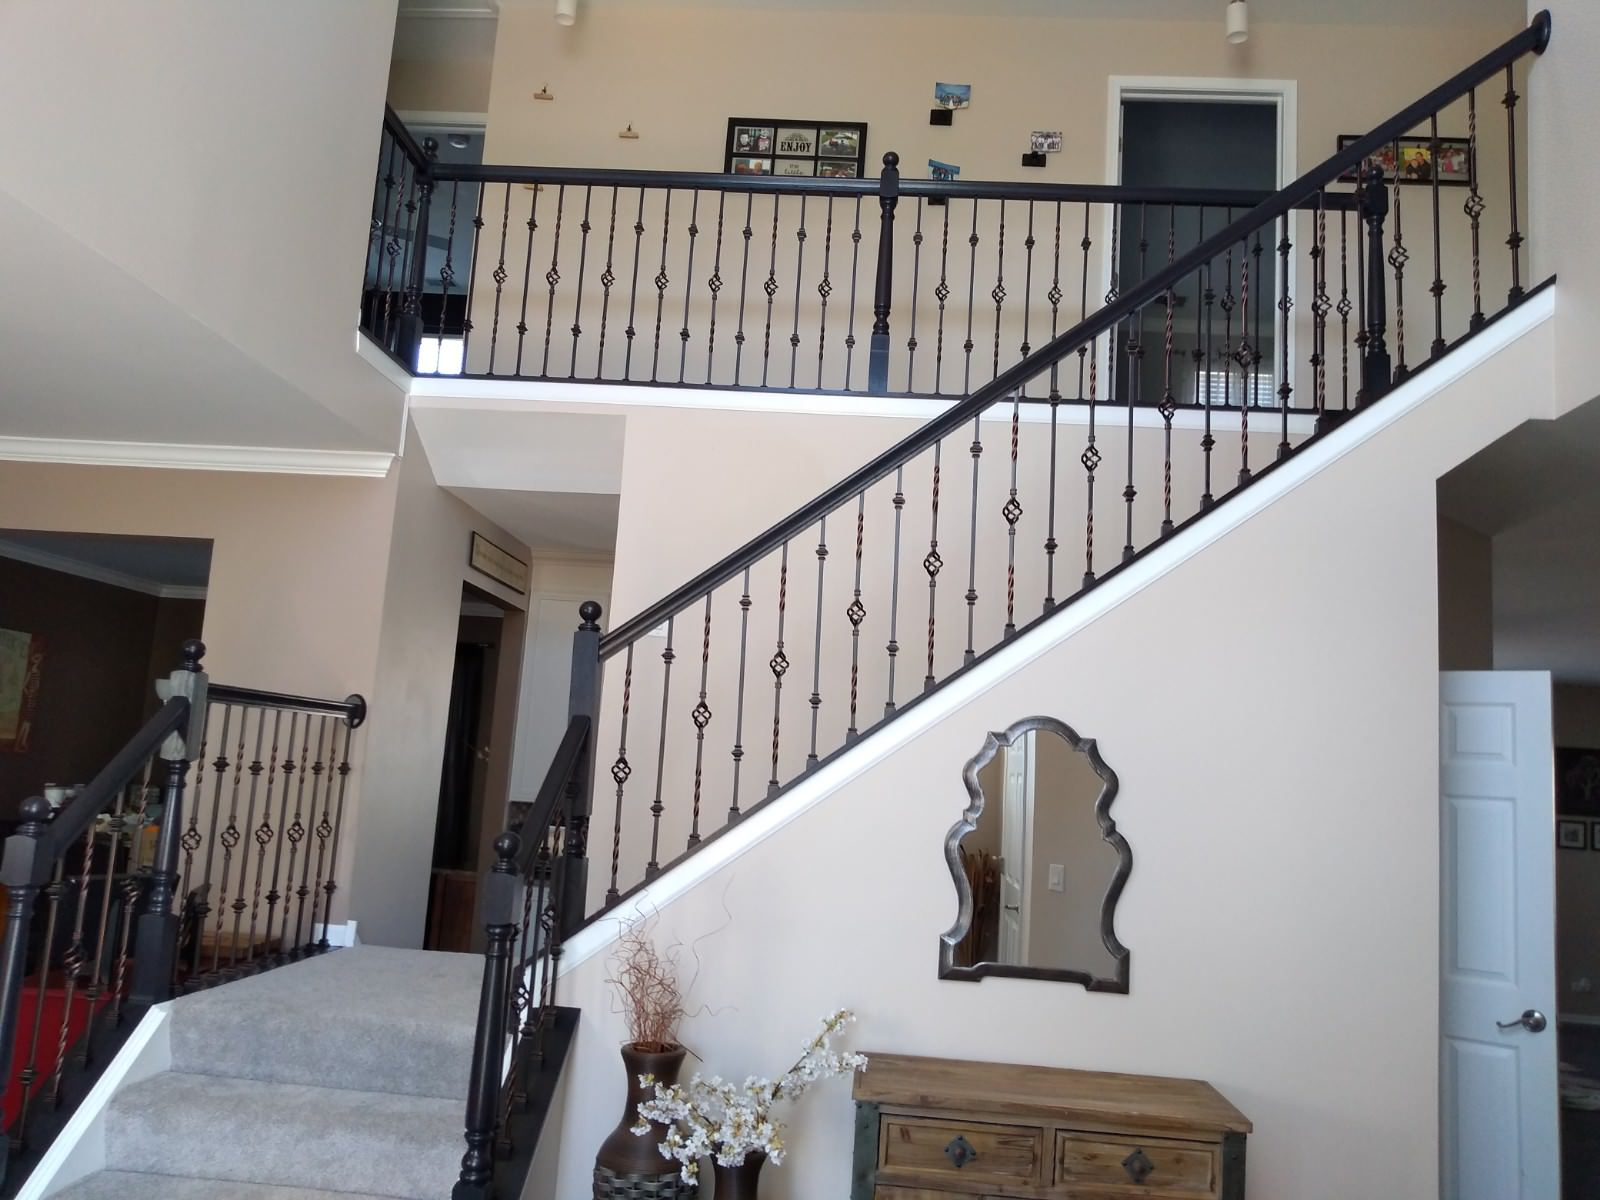 New Balusters and stained to match